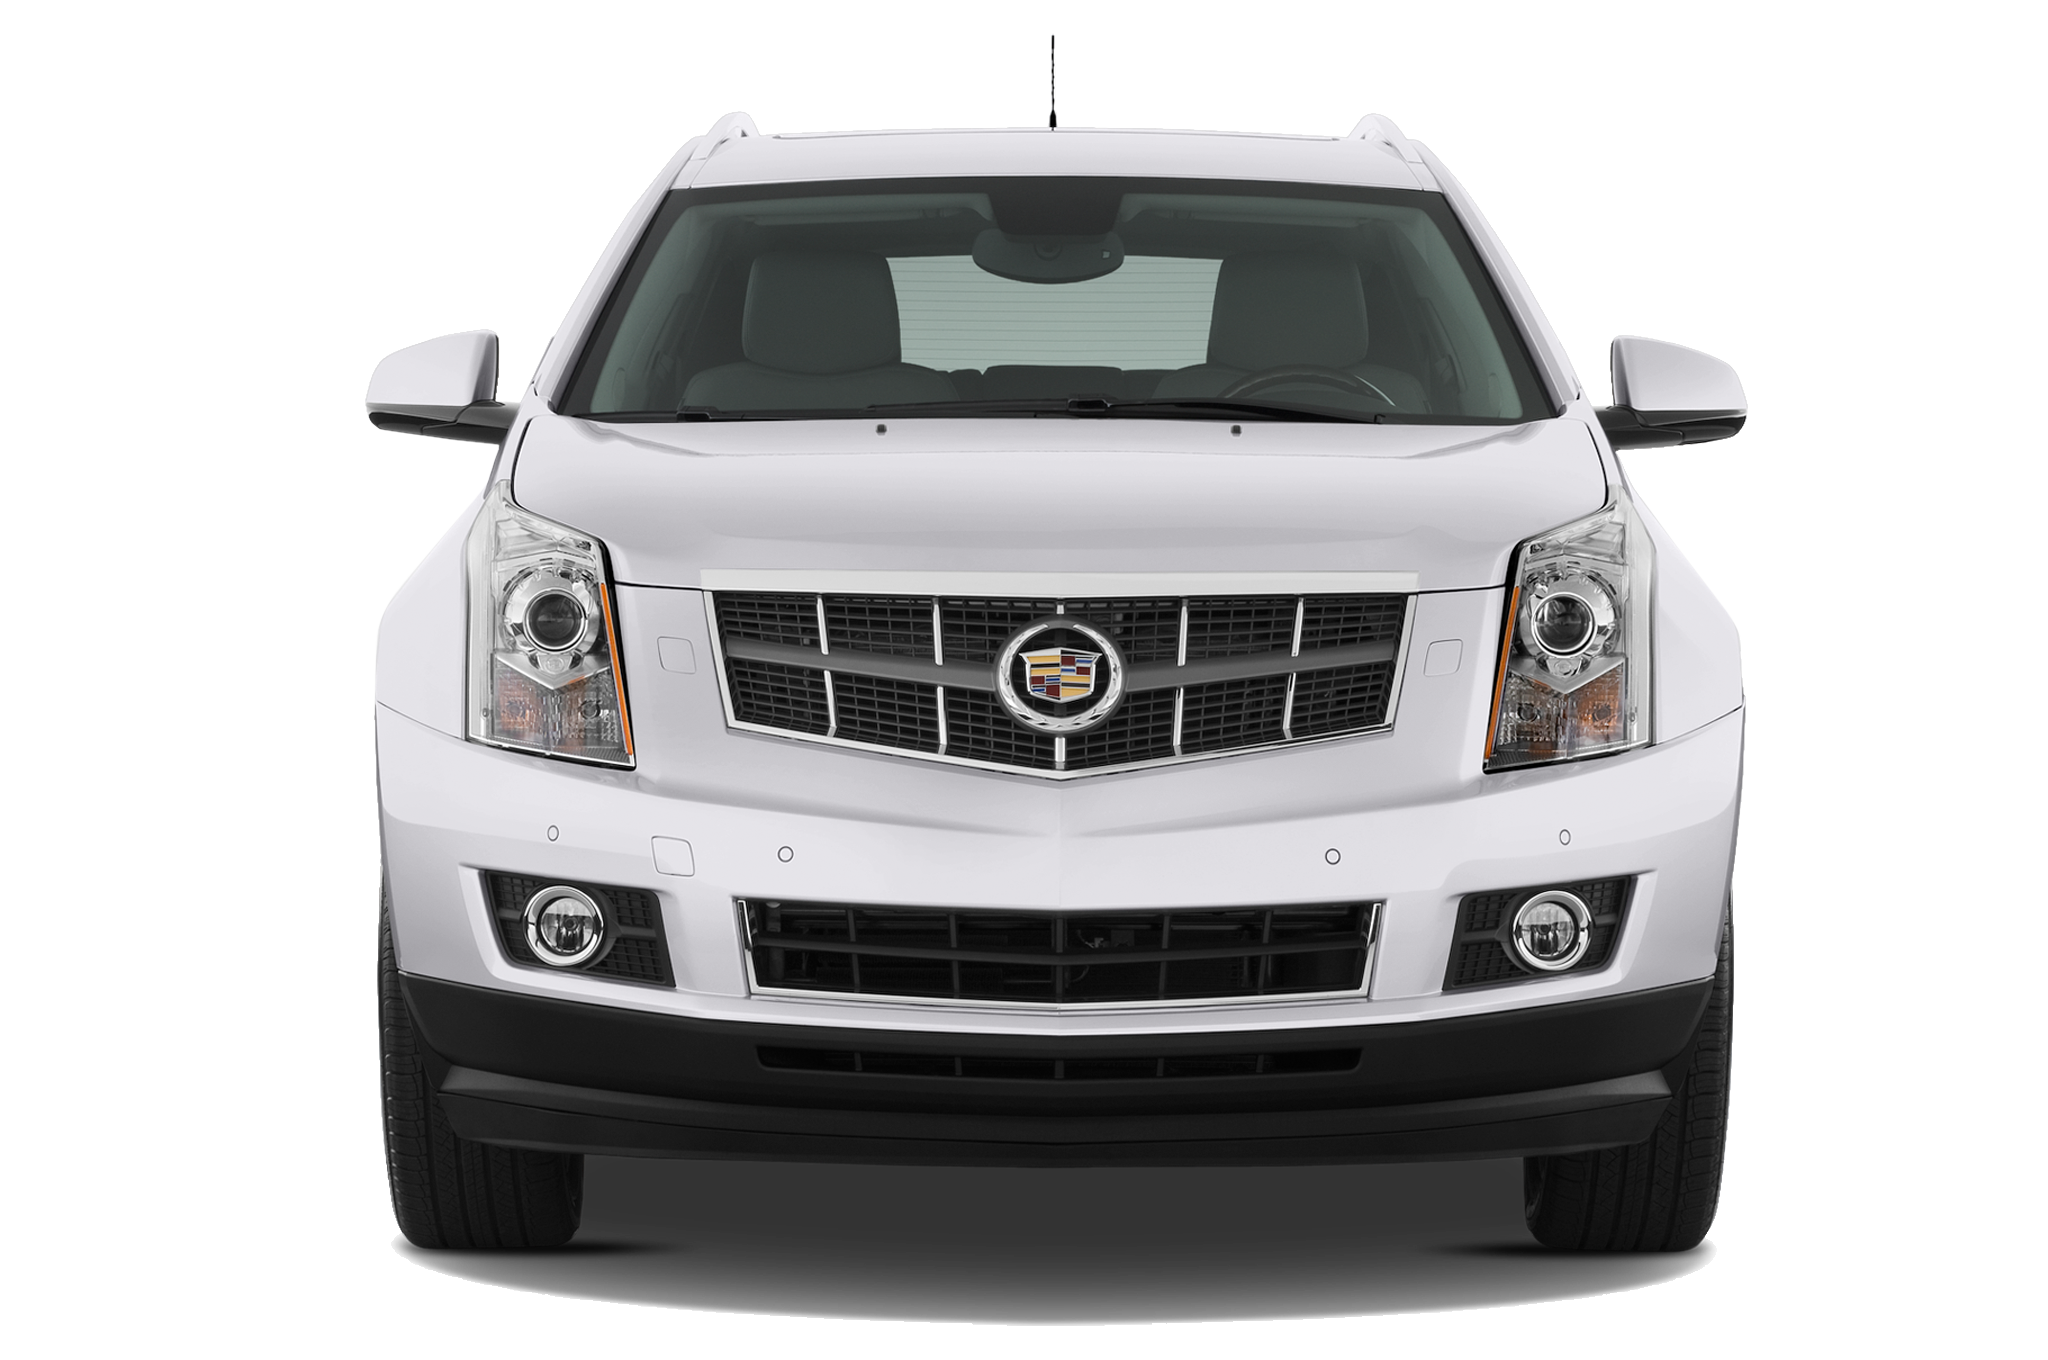 srx srxmotoring cadillac east fun features news family middle with hdr car img